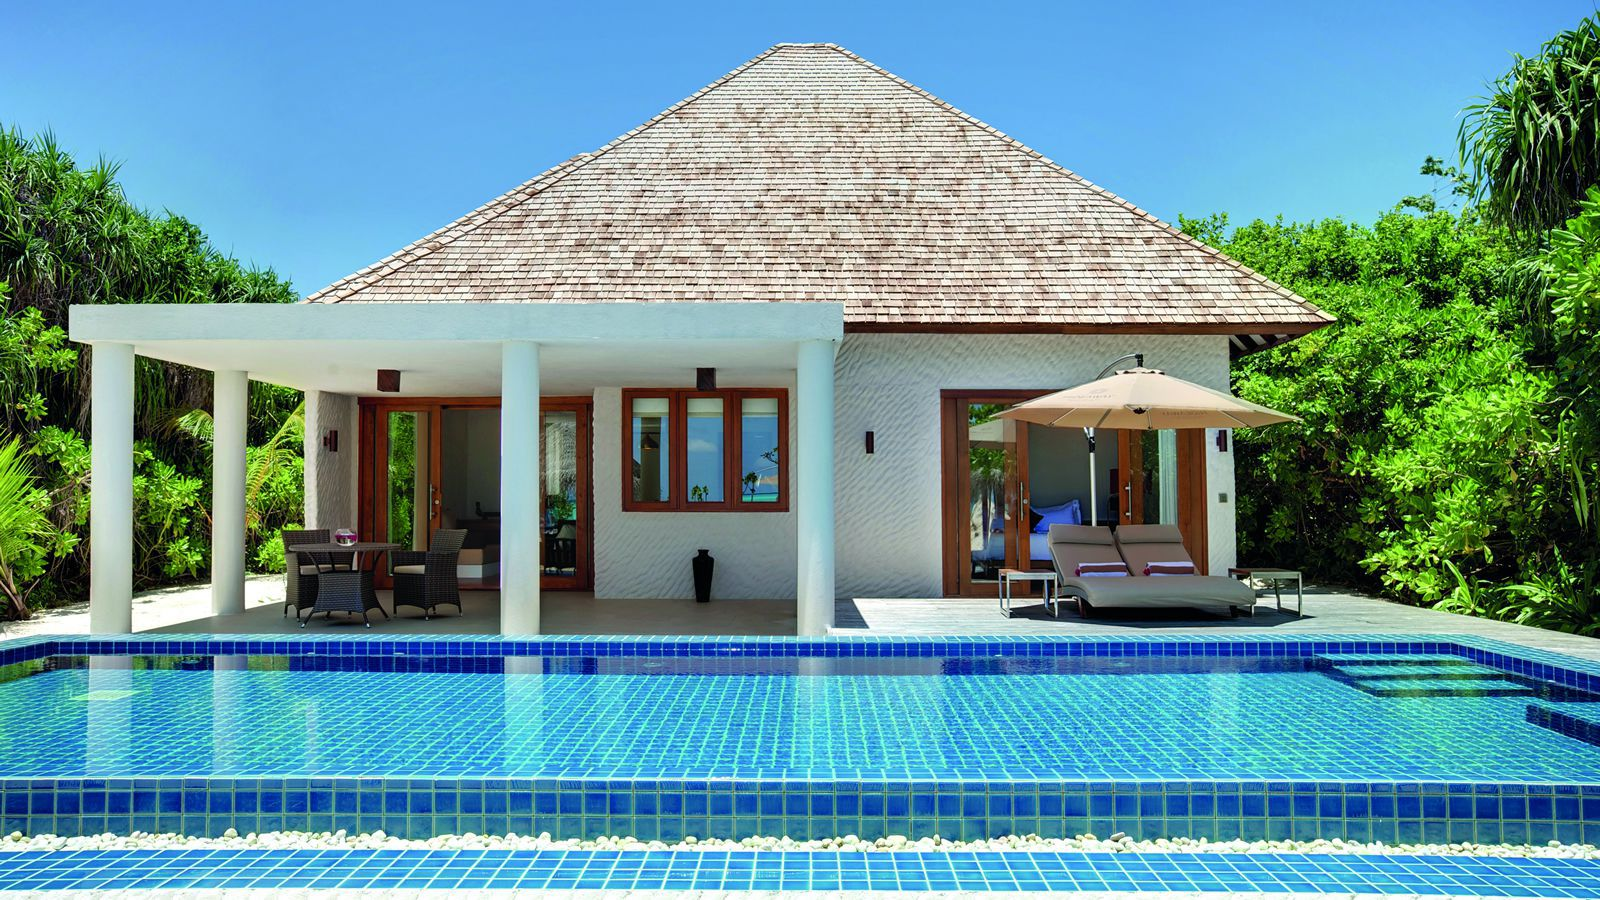 Luxury Pool Villas Maldives: Maldives Deluxe Beach Residence With Pool